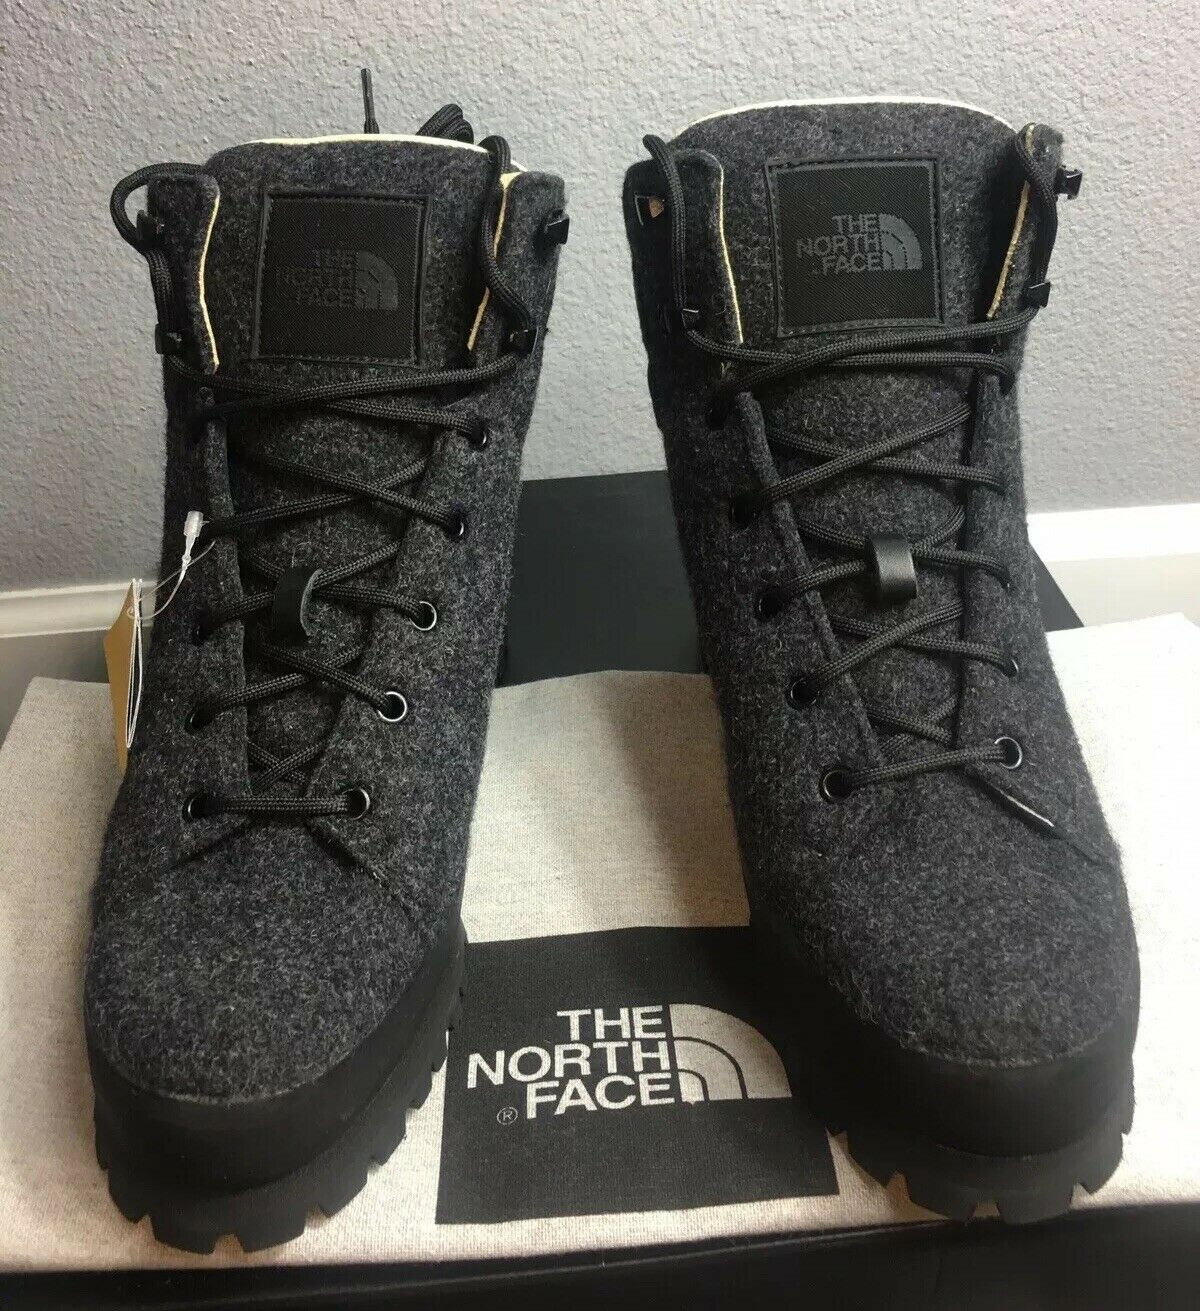 The North Face Women Cryos Cryos Cryos Hiker Wool Boots W Vibrant Rubber Sole Size 9  450 babd6e